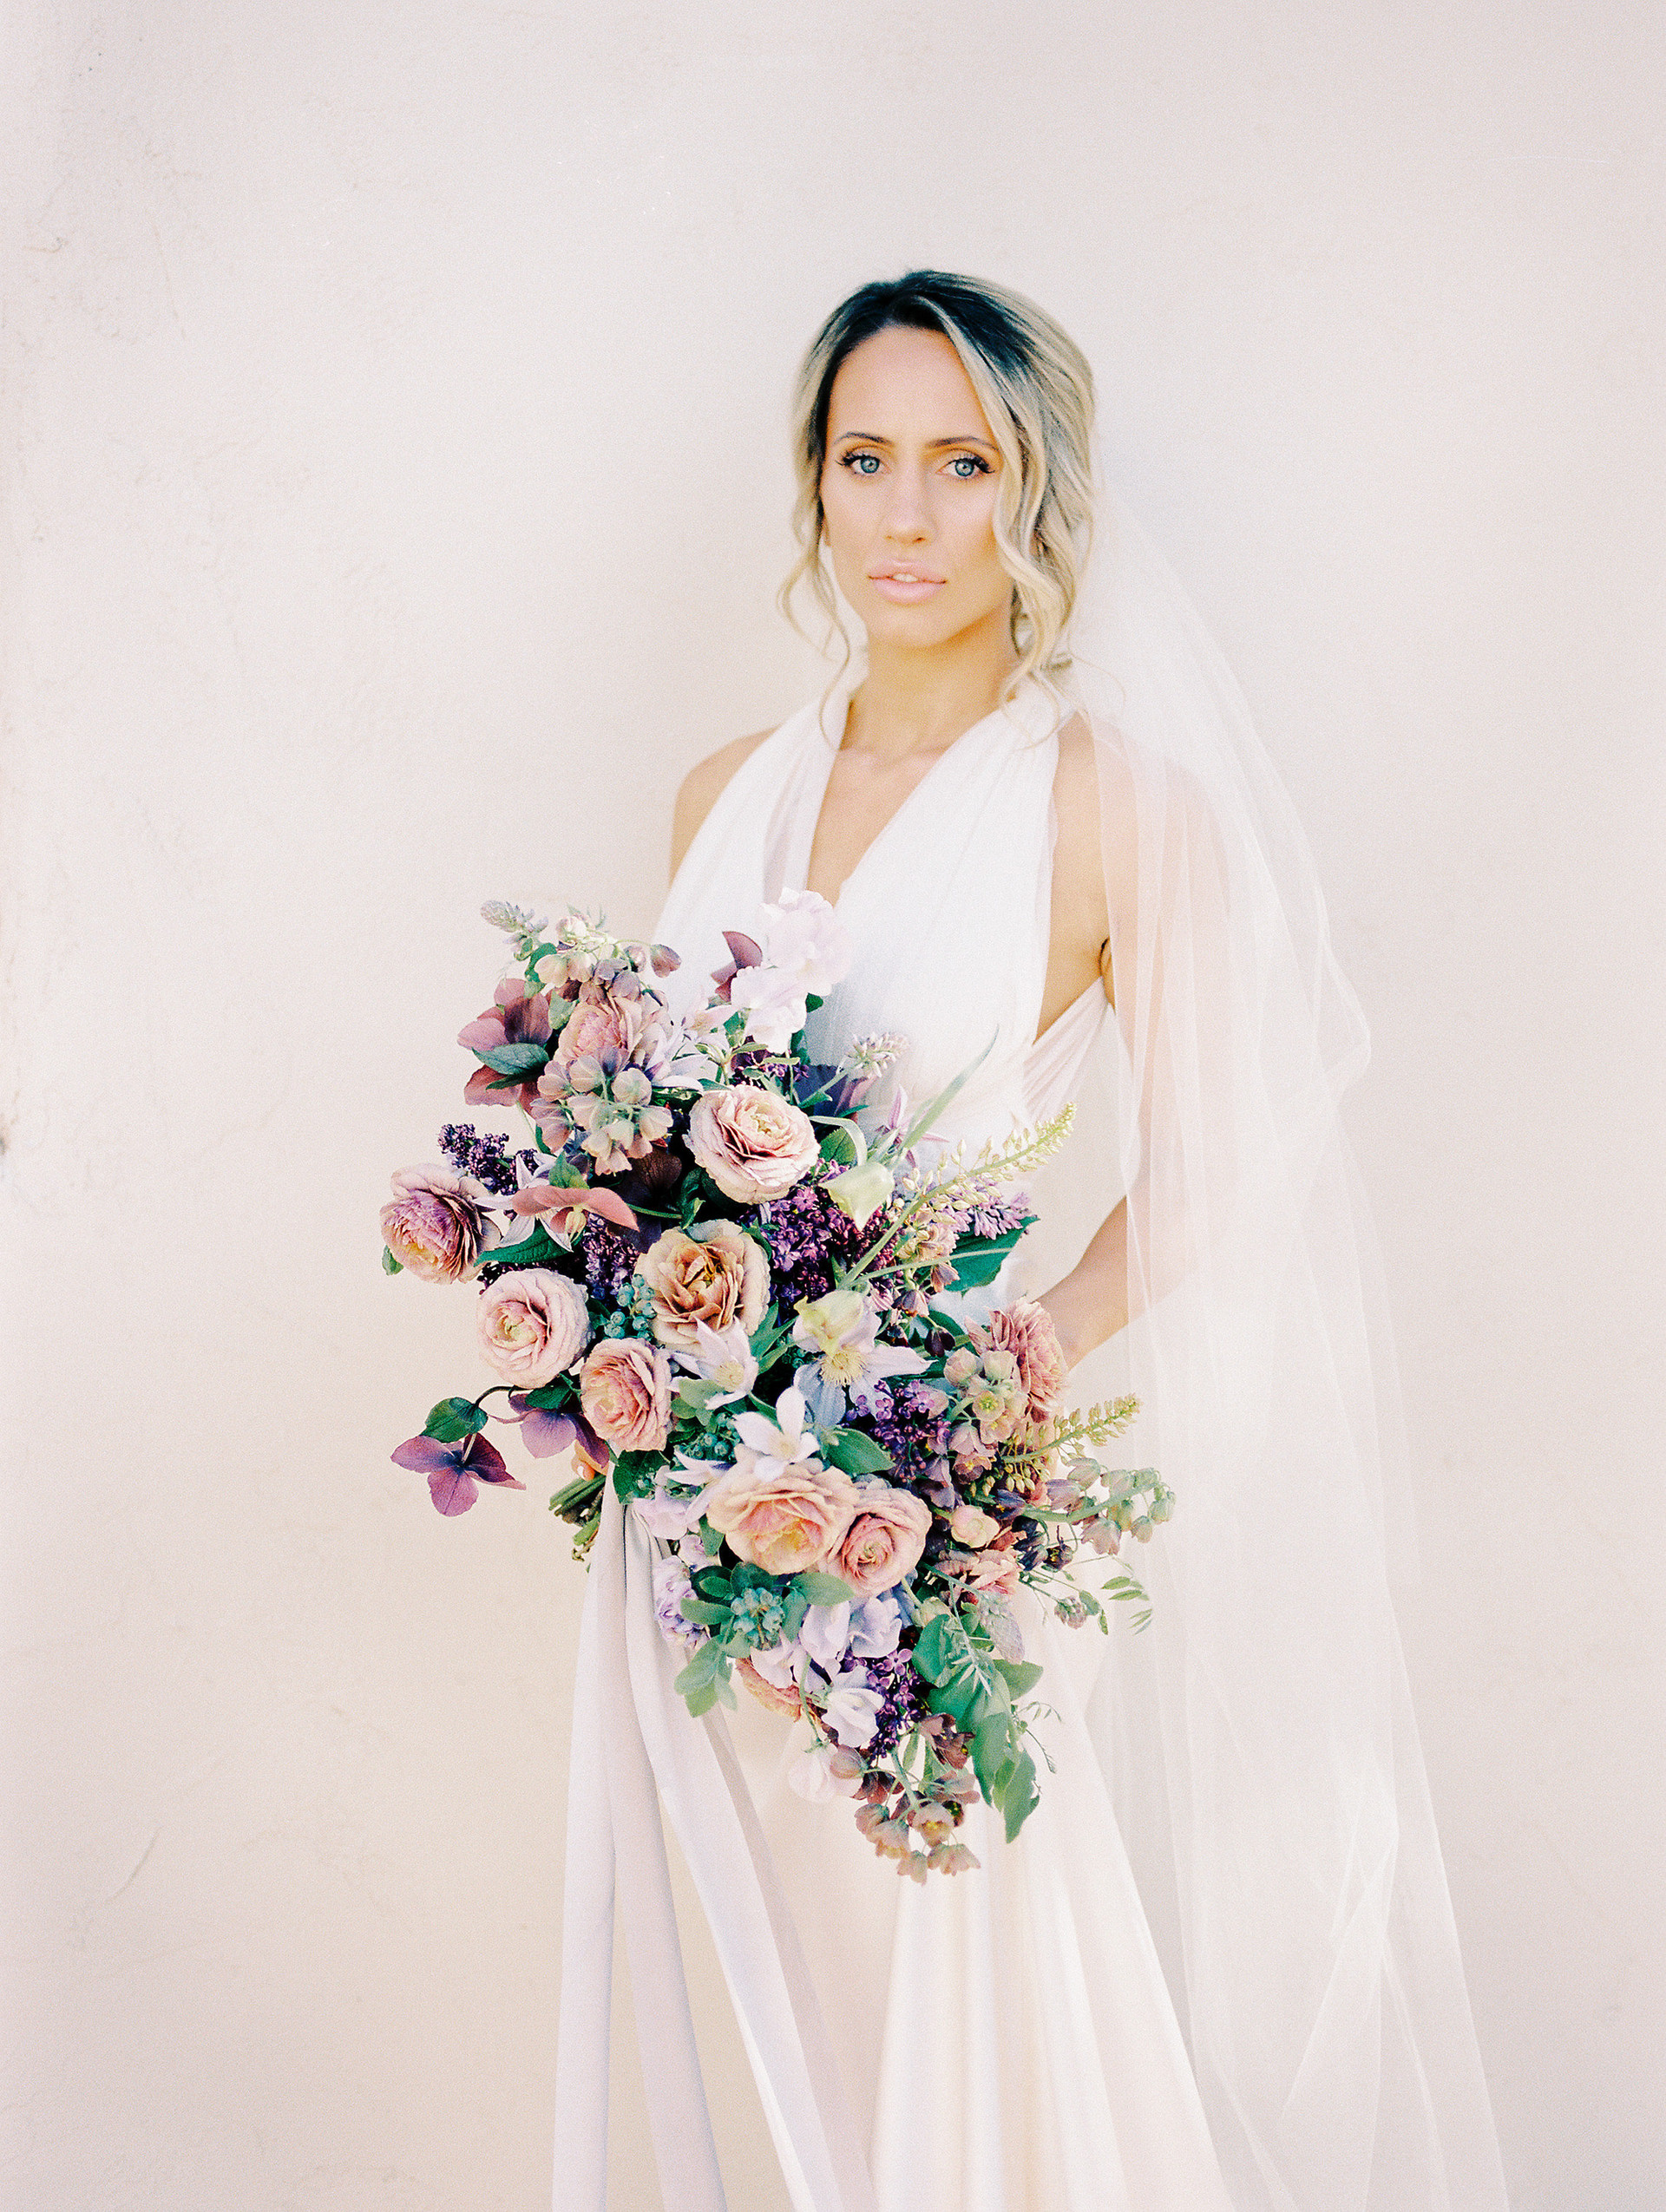 Mauve and plum bridal bouquet with lilac, sweet pea, ranunculus, fritillaria and hellebores. Photo: Shannon Elizabeth